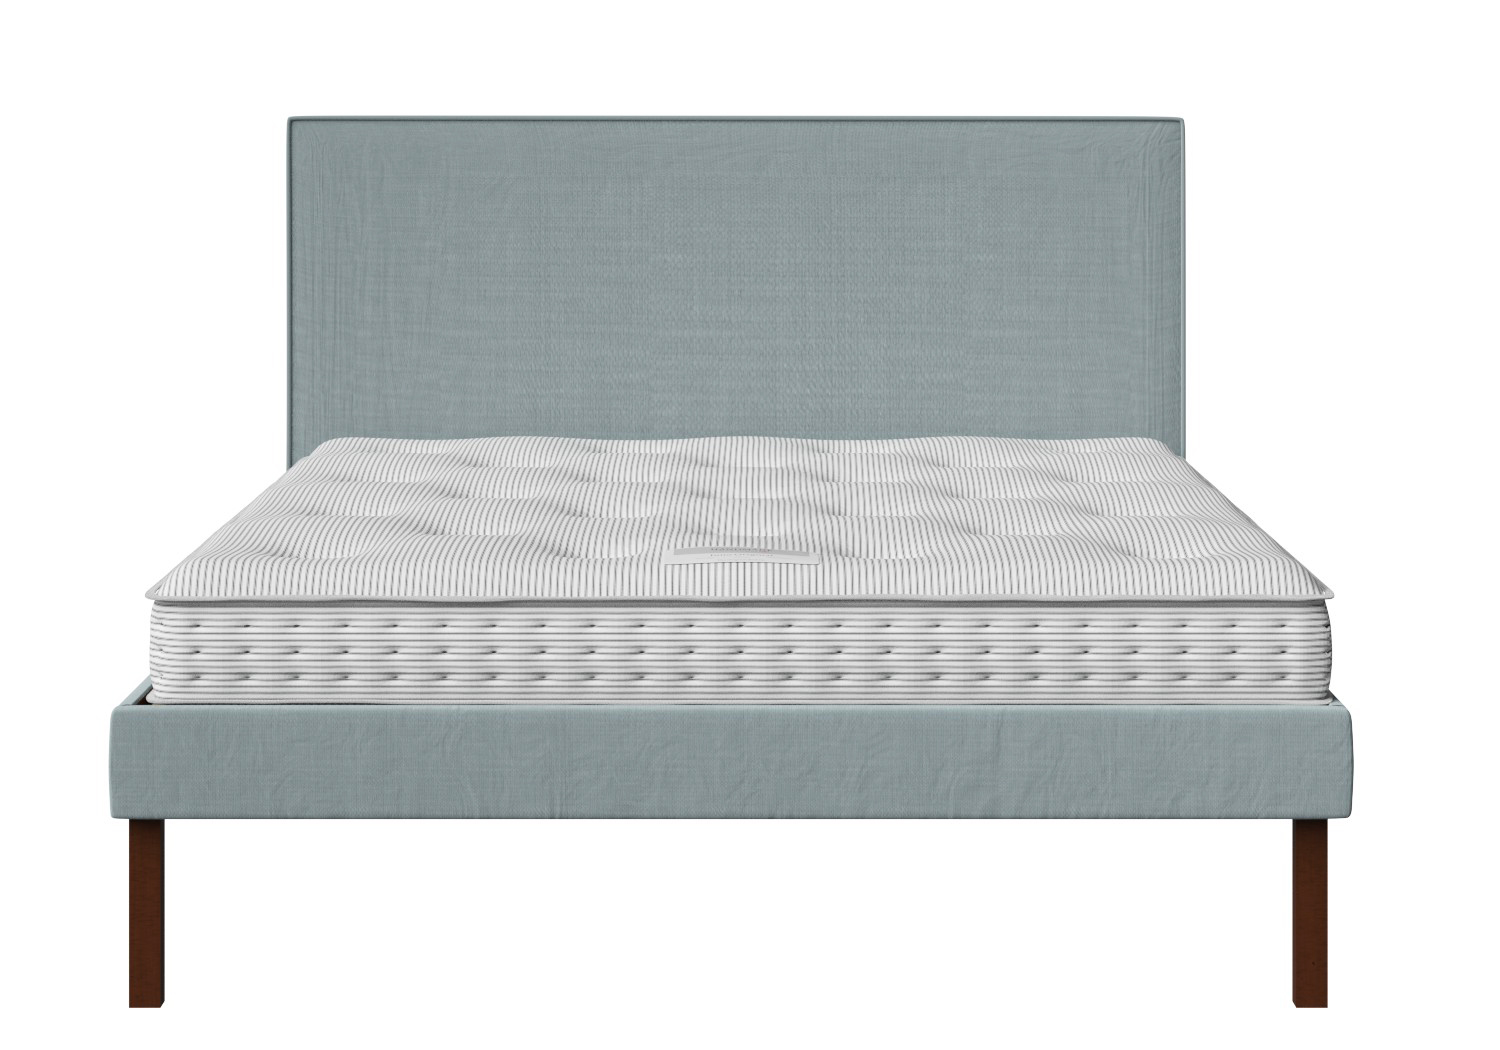 Misaki Upholstered Bed in Wedgewood fabric with piping shown with Juno 1 mattress